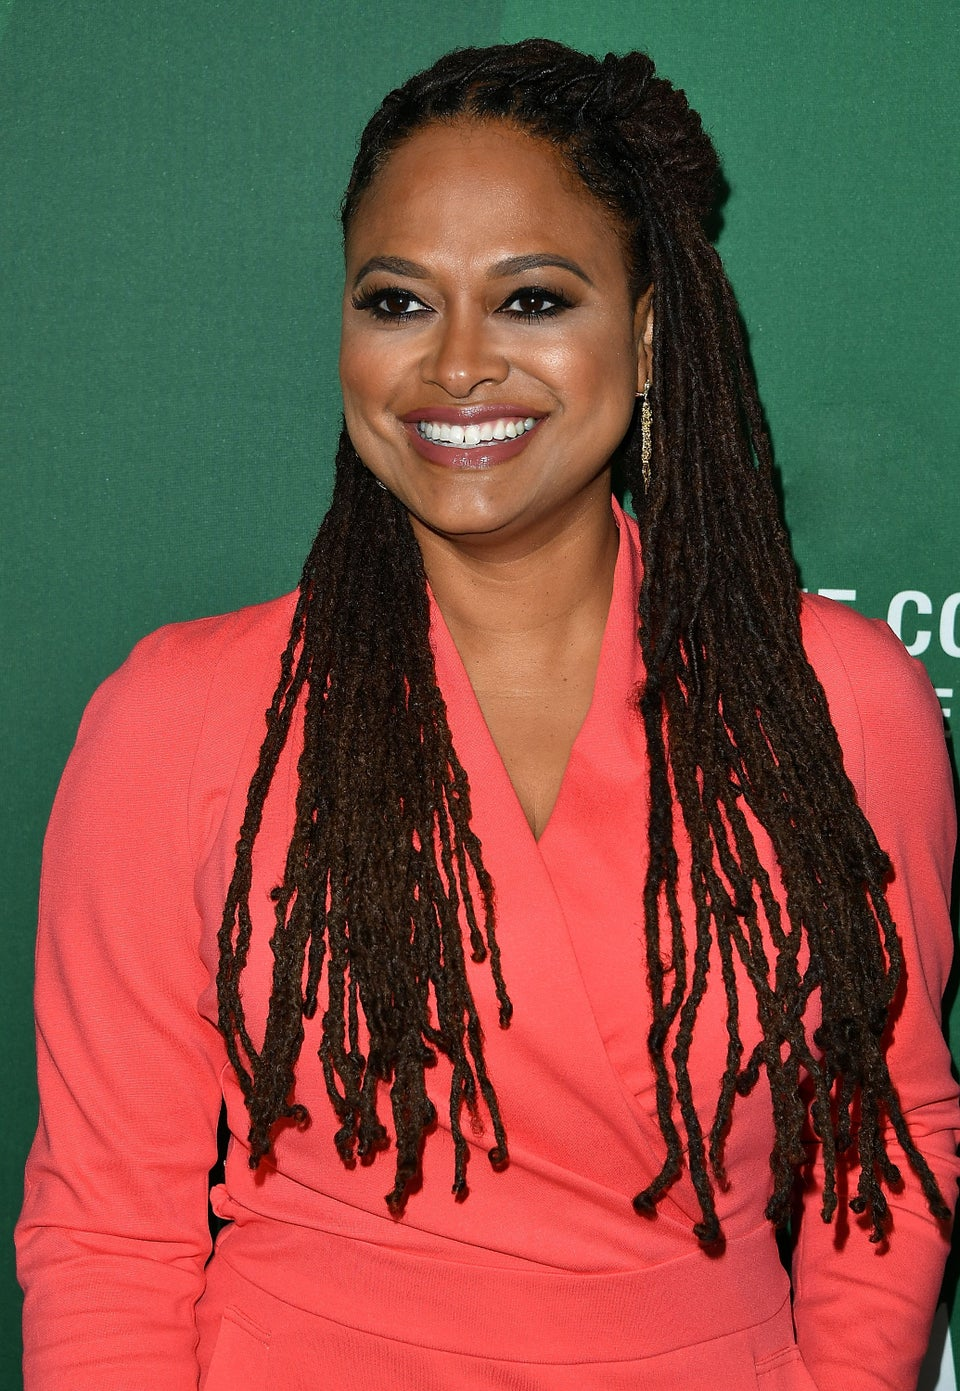 Ava DuVernay Explains 'Loophole' In 13th Amendment While Talking To Pusha T